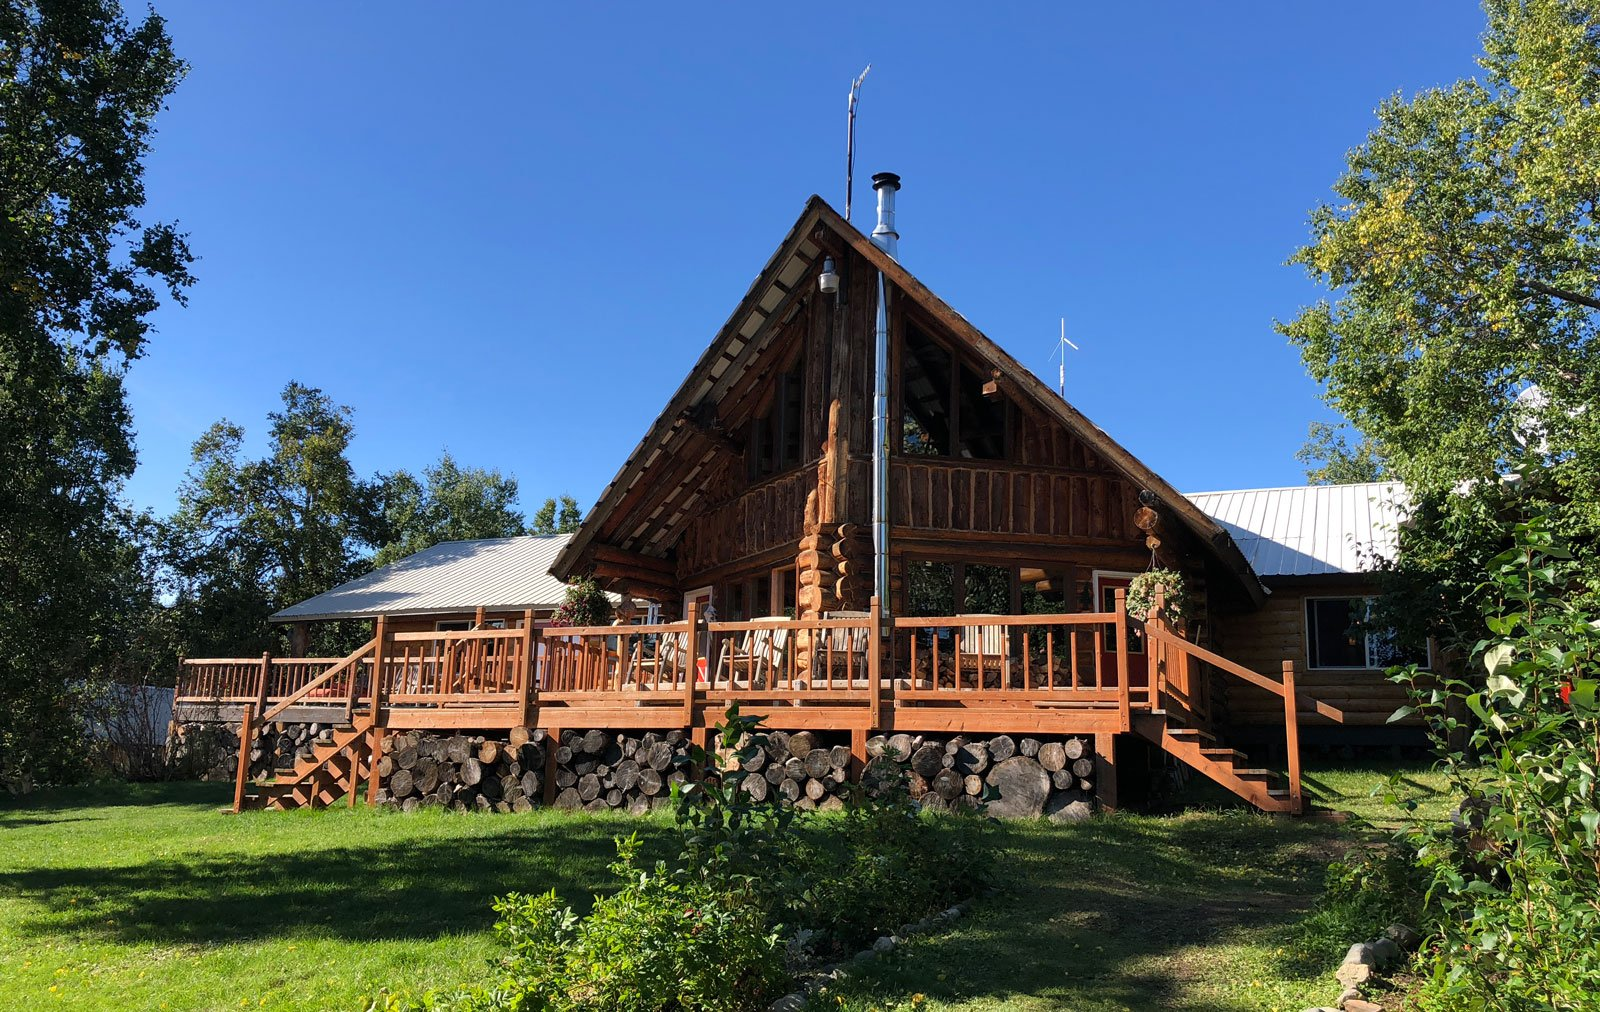 The main lodge at Within the Wild